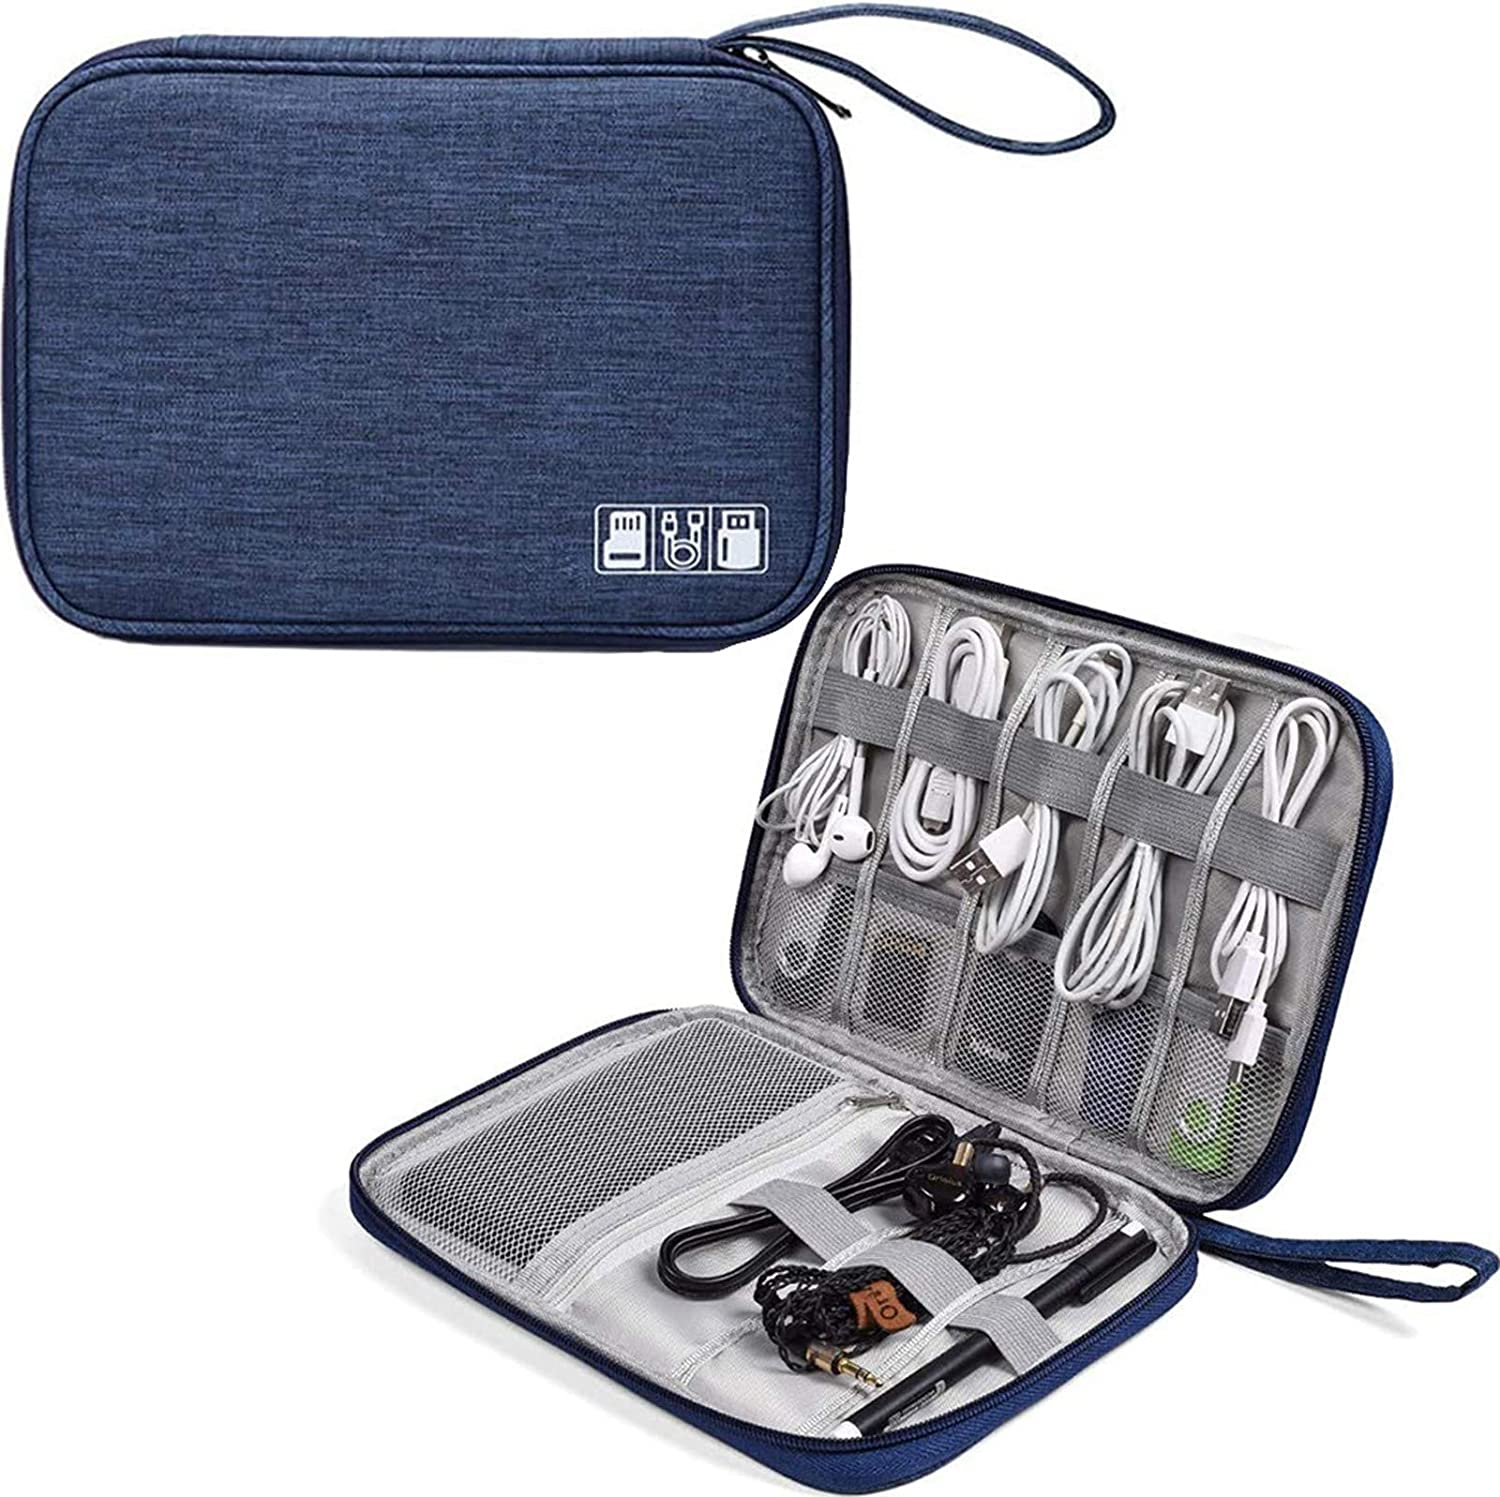 Travel Electronics Cable Organizer Bag Accessories Bag, Waterproof Universal Electronics/Accessories Multifunction Carrying Case Gadgets Bag Pouch for Cable, Charger, Phone, USB, SD Card, Dark Blue